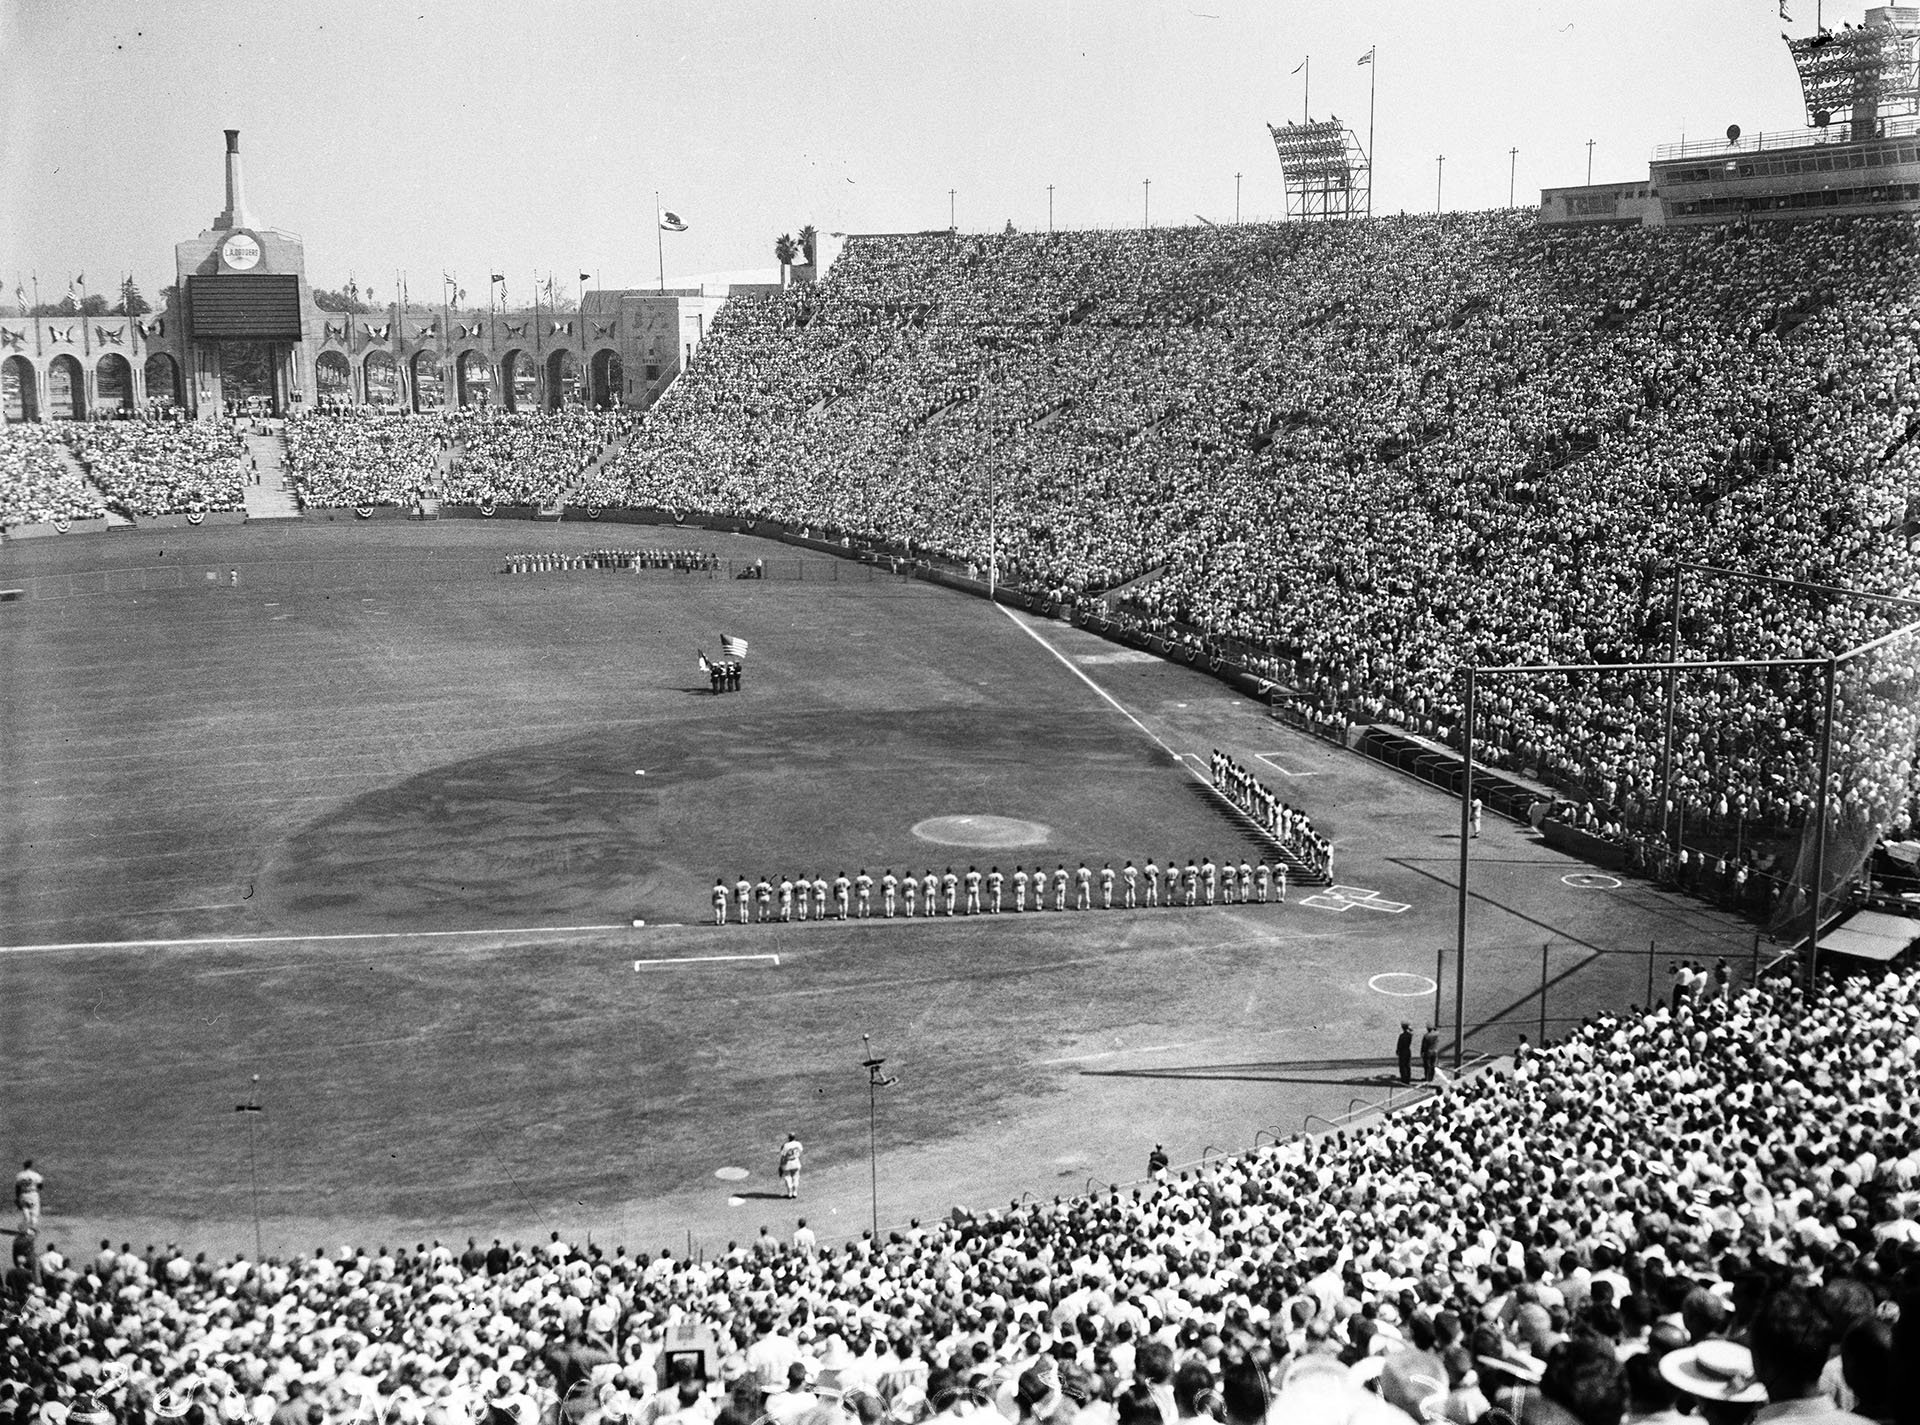 Los Angeles Memorial Coliseum, Oct 4, 1959 - Another historic moment in a very historical time period for Dodgers, a record crowd of 92,364 are witness to first World Series game played in the state of California. LA beat White Sox in Game 3 by 3-1 score to take a 2-1 games lead https://t.co/KgXtGzHGRs